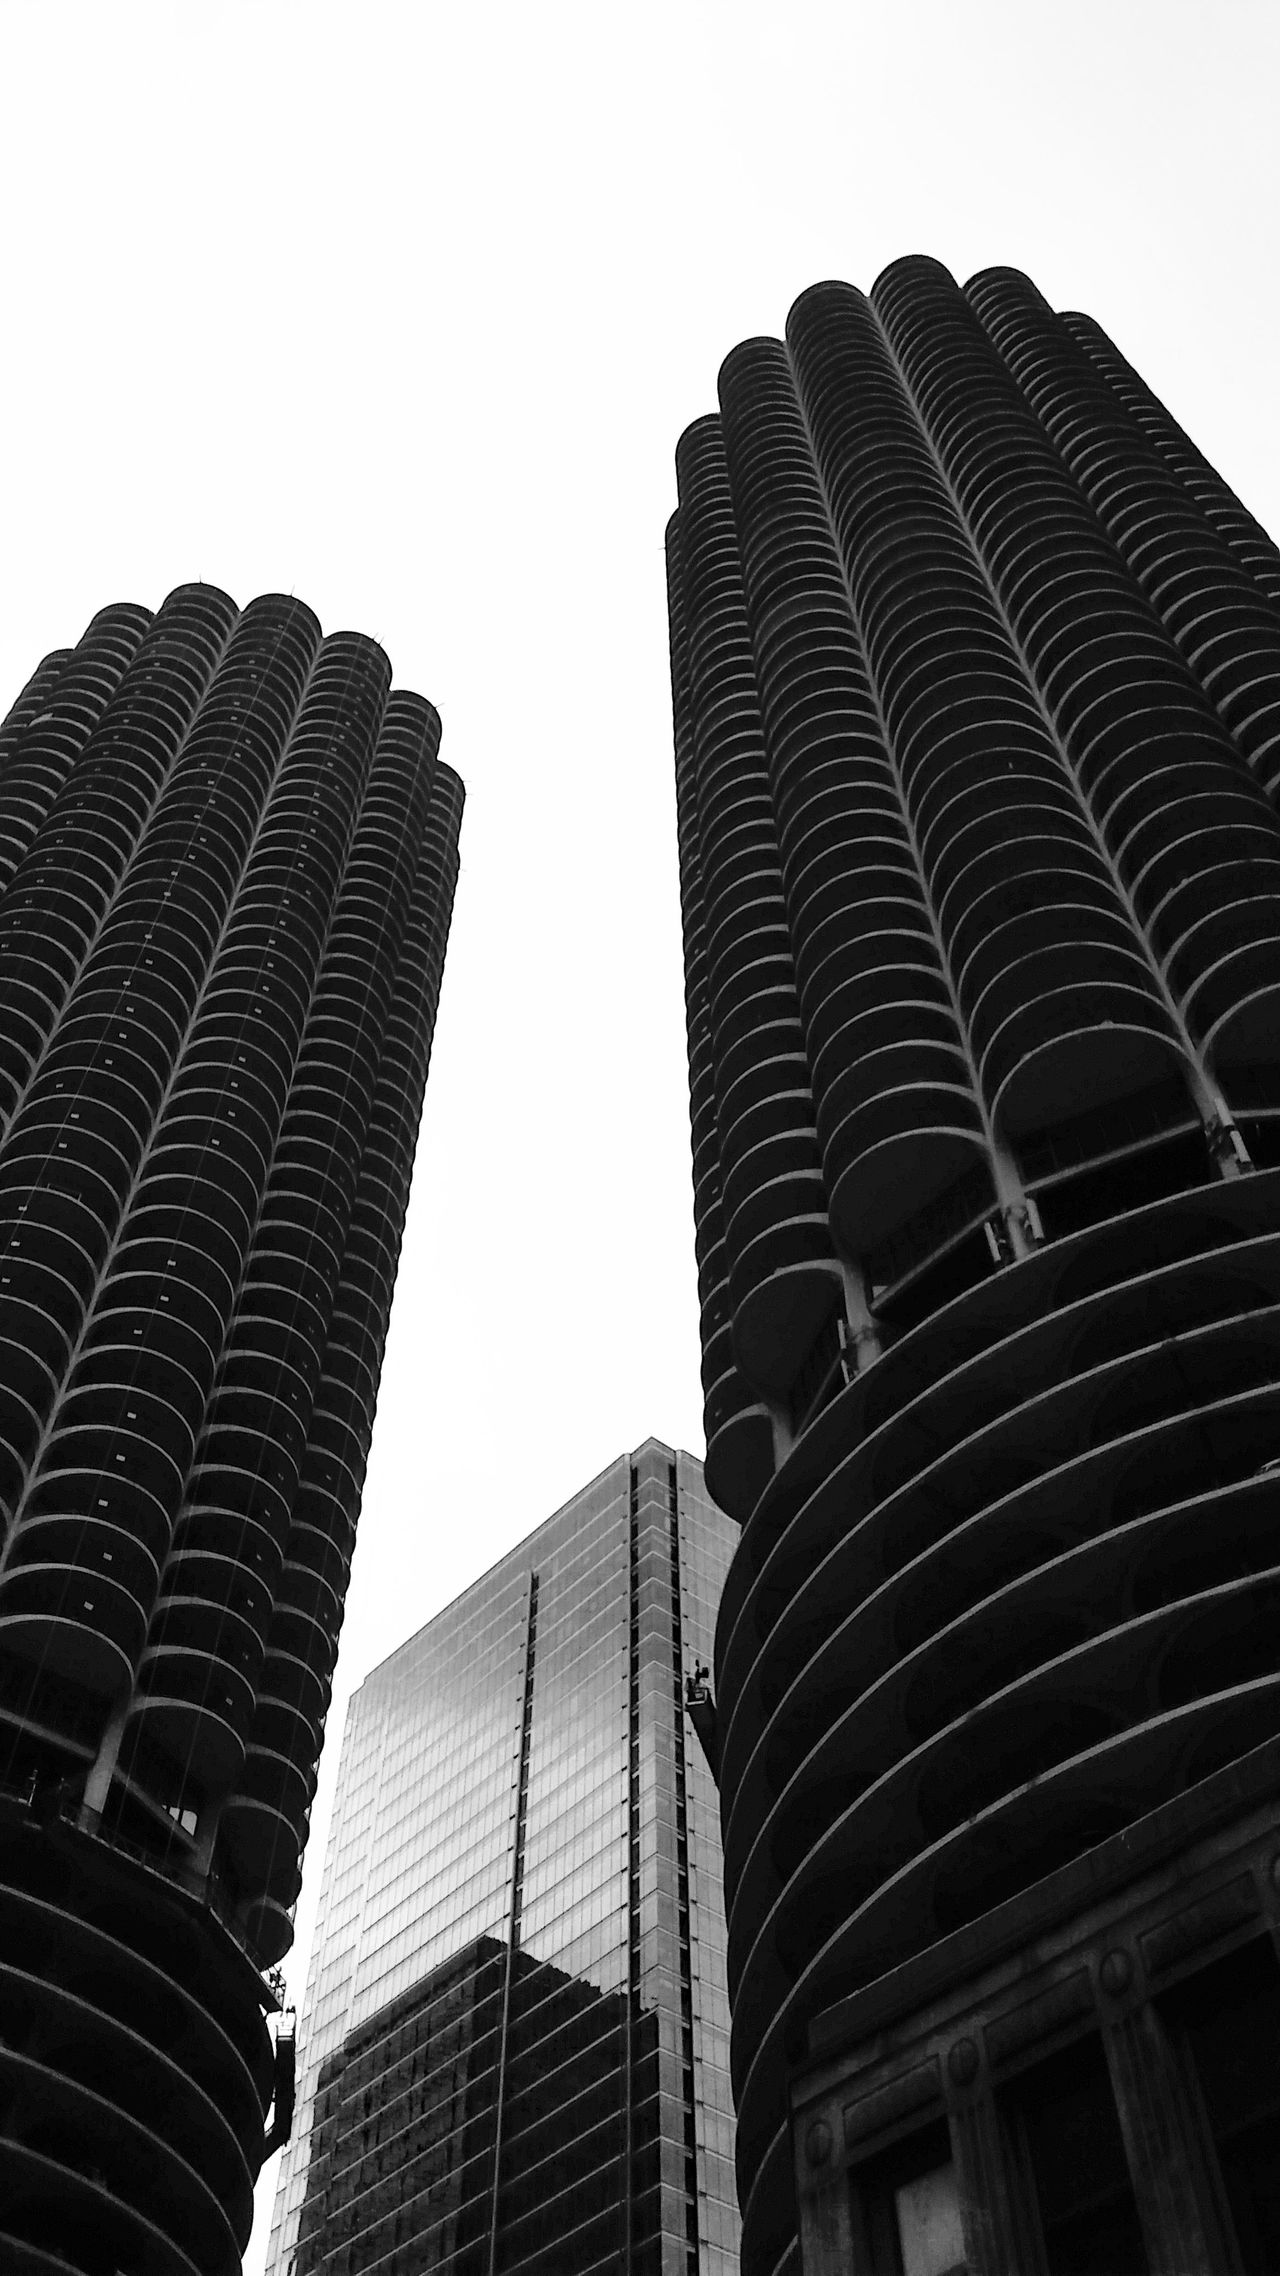 Architecture Black & White Black And White Building Exterior Buildings Built Structure City City Cityscape Clear Sky Contrast Day Low Angle View Modern Monochrome No People Office Block Outdoors Sky Skyscraper Structure Tower Urban Skyline